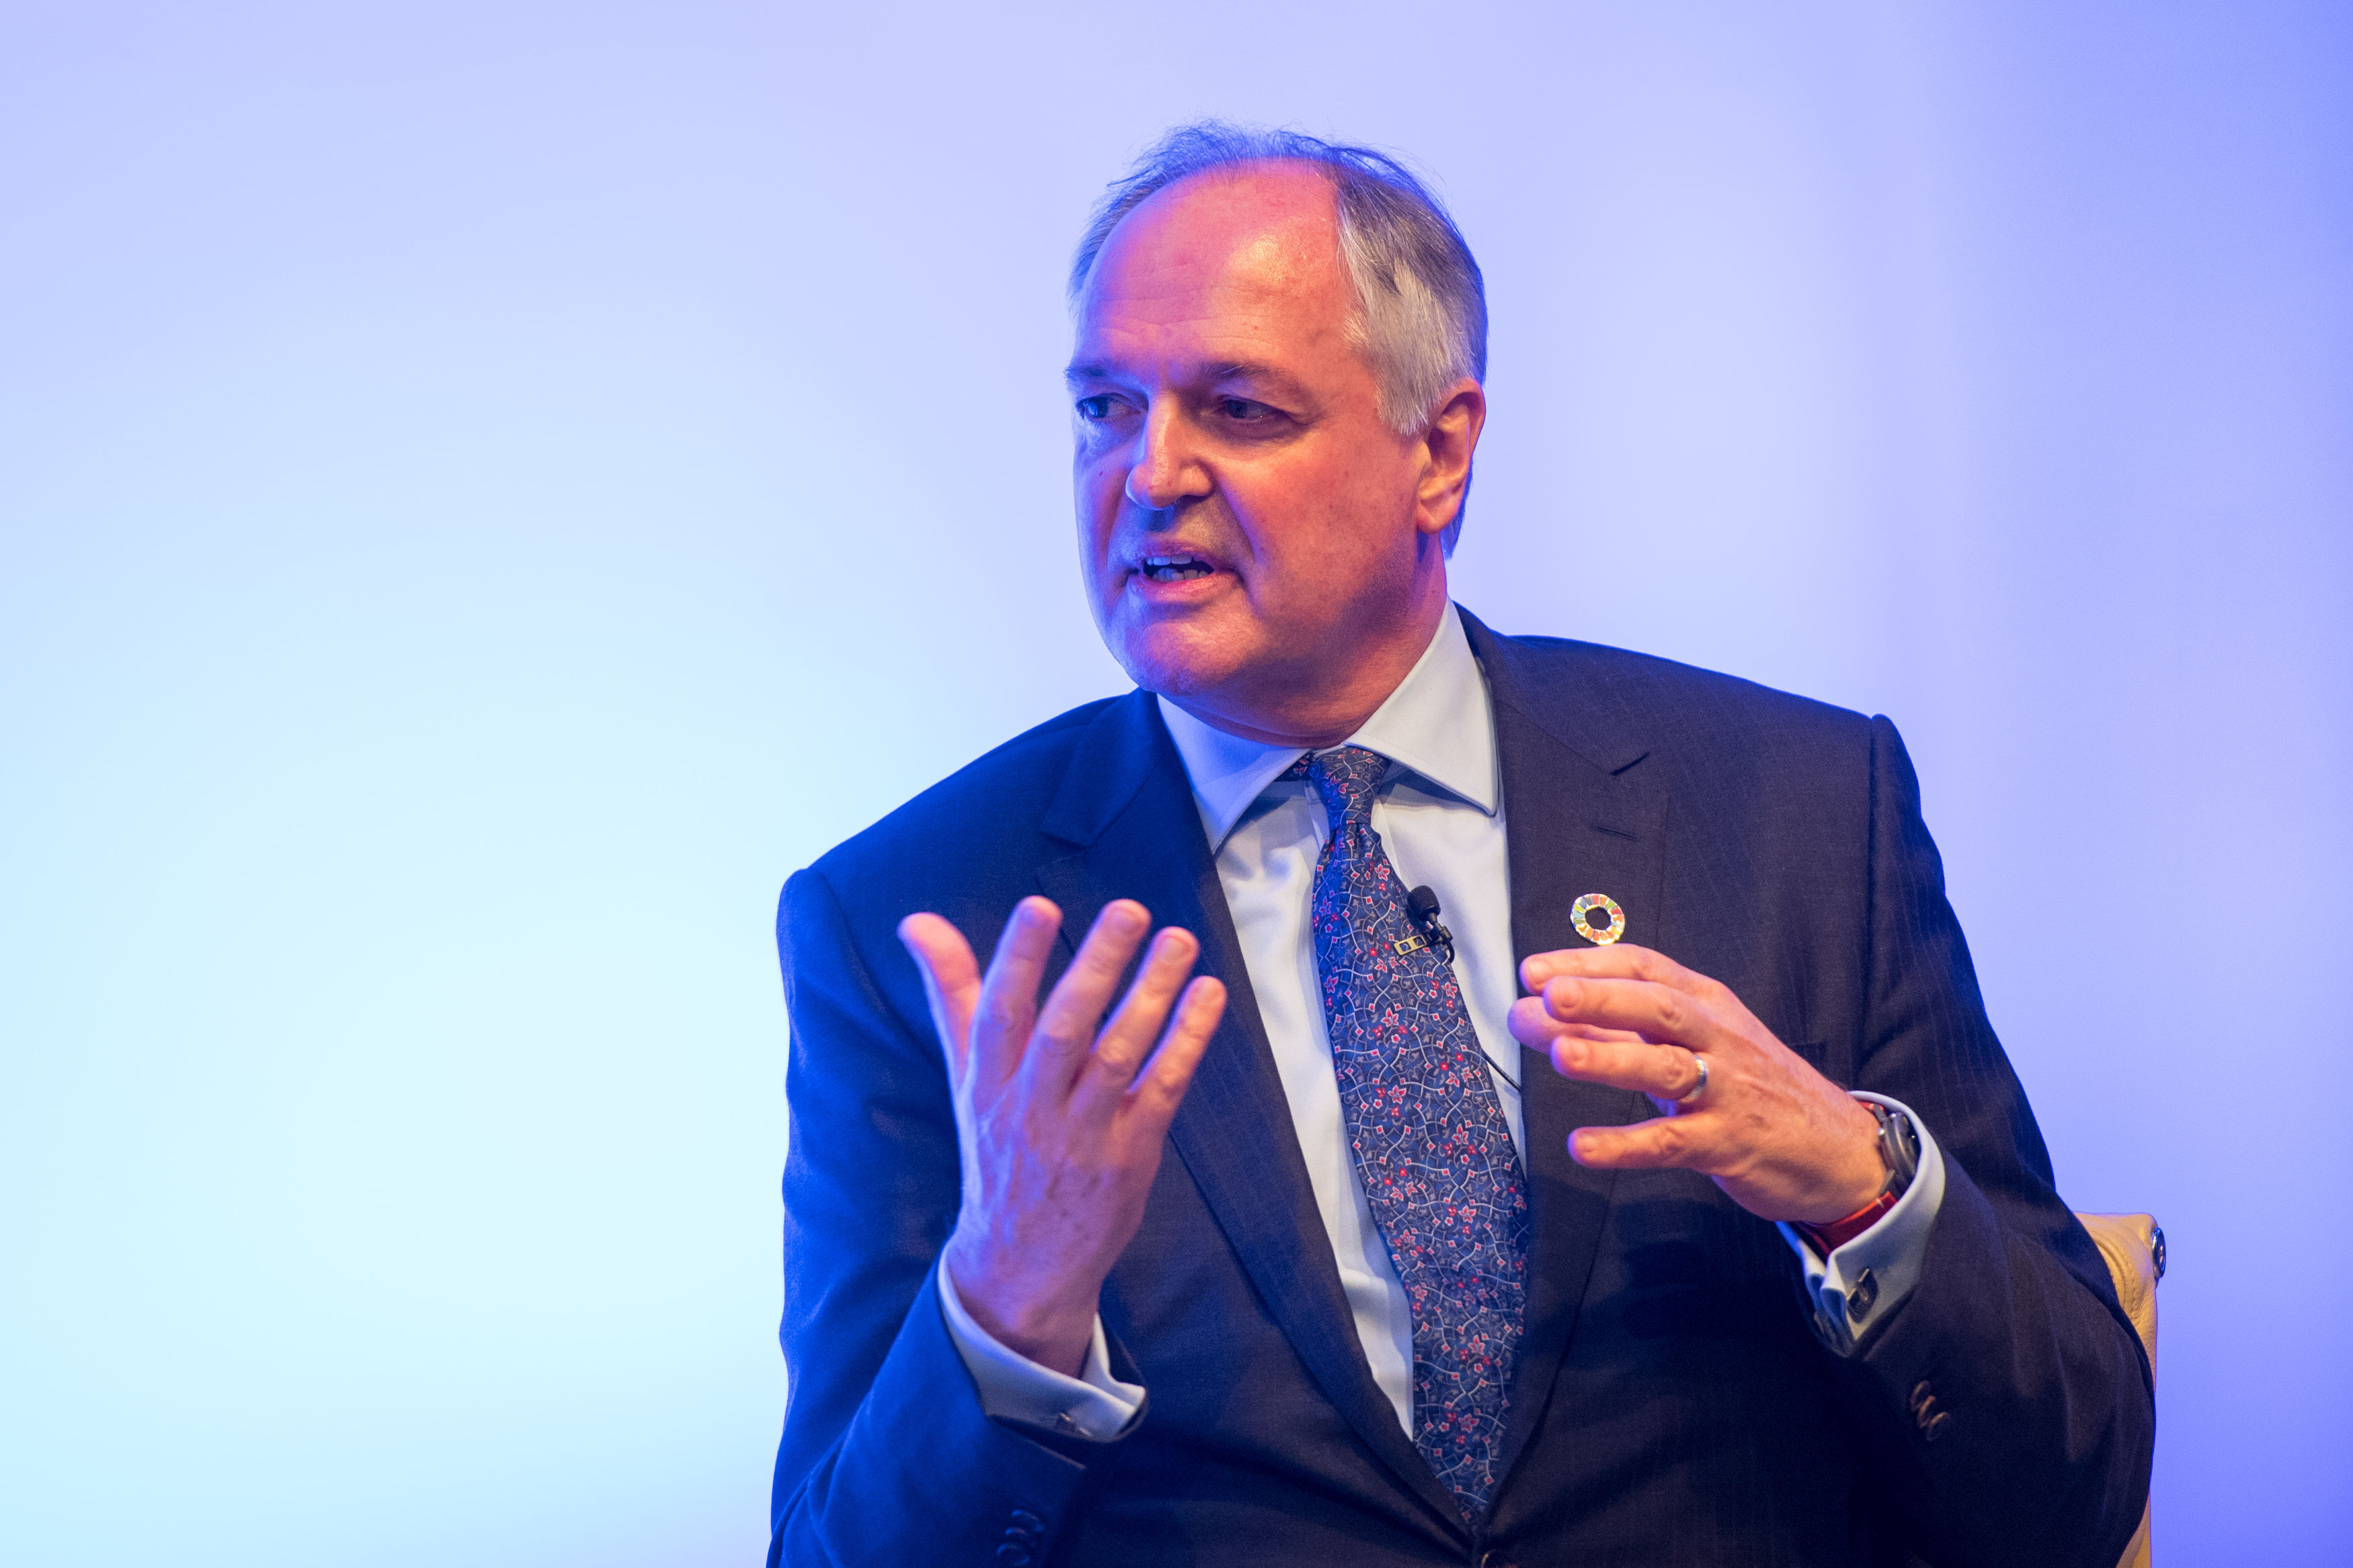 Unilever boss says Brexit didn't influence headquarters move out of London